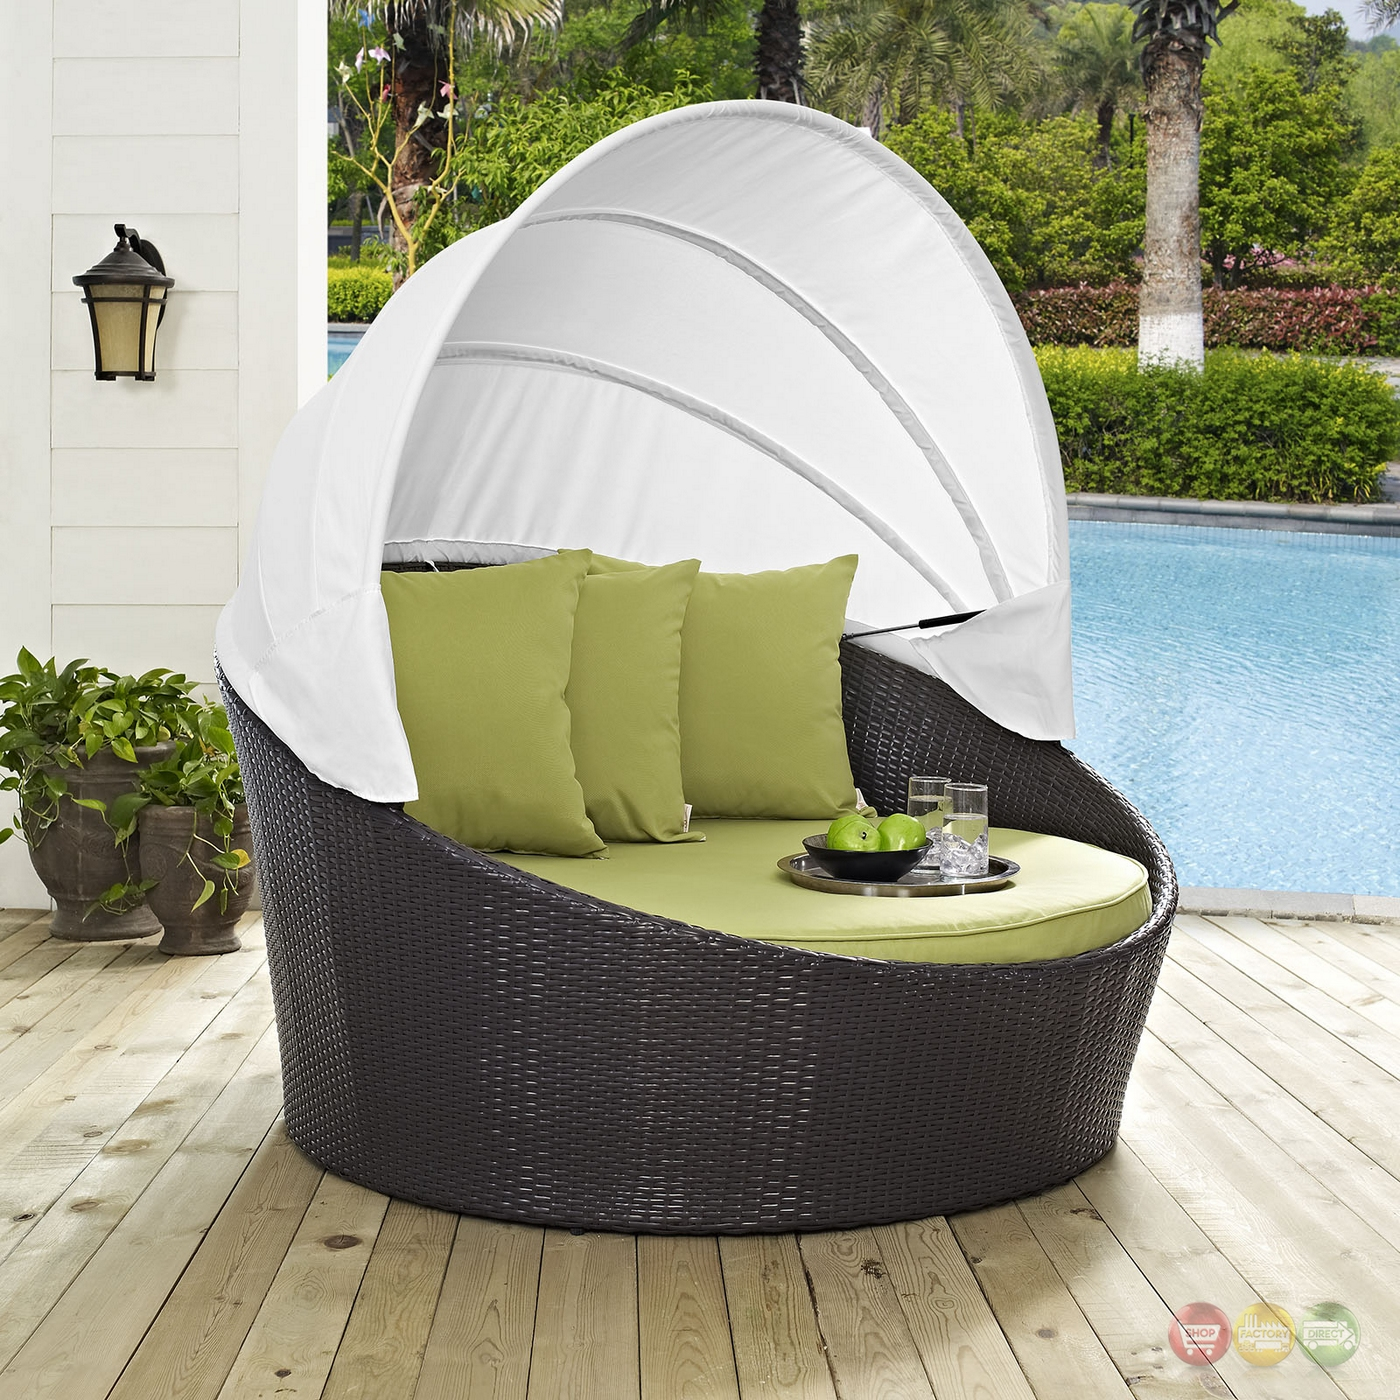 Convene Modular Rattan Outdoor Patio Canopy Daybed With ... on Belham Living Lilianna Outdoor Daybed id=87375